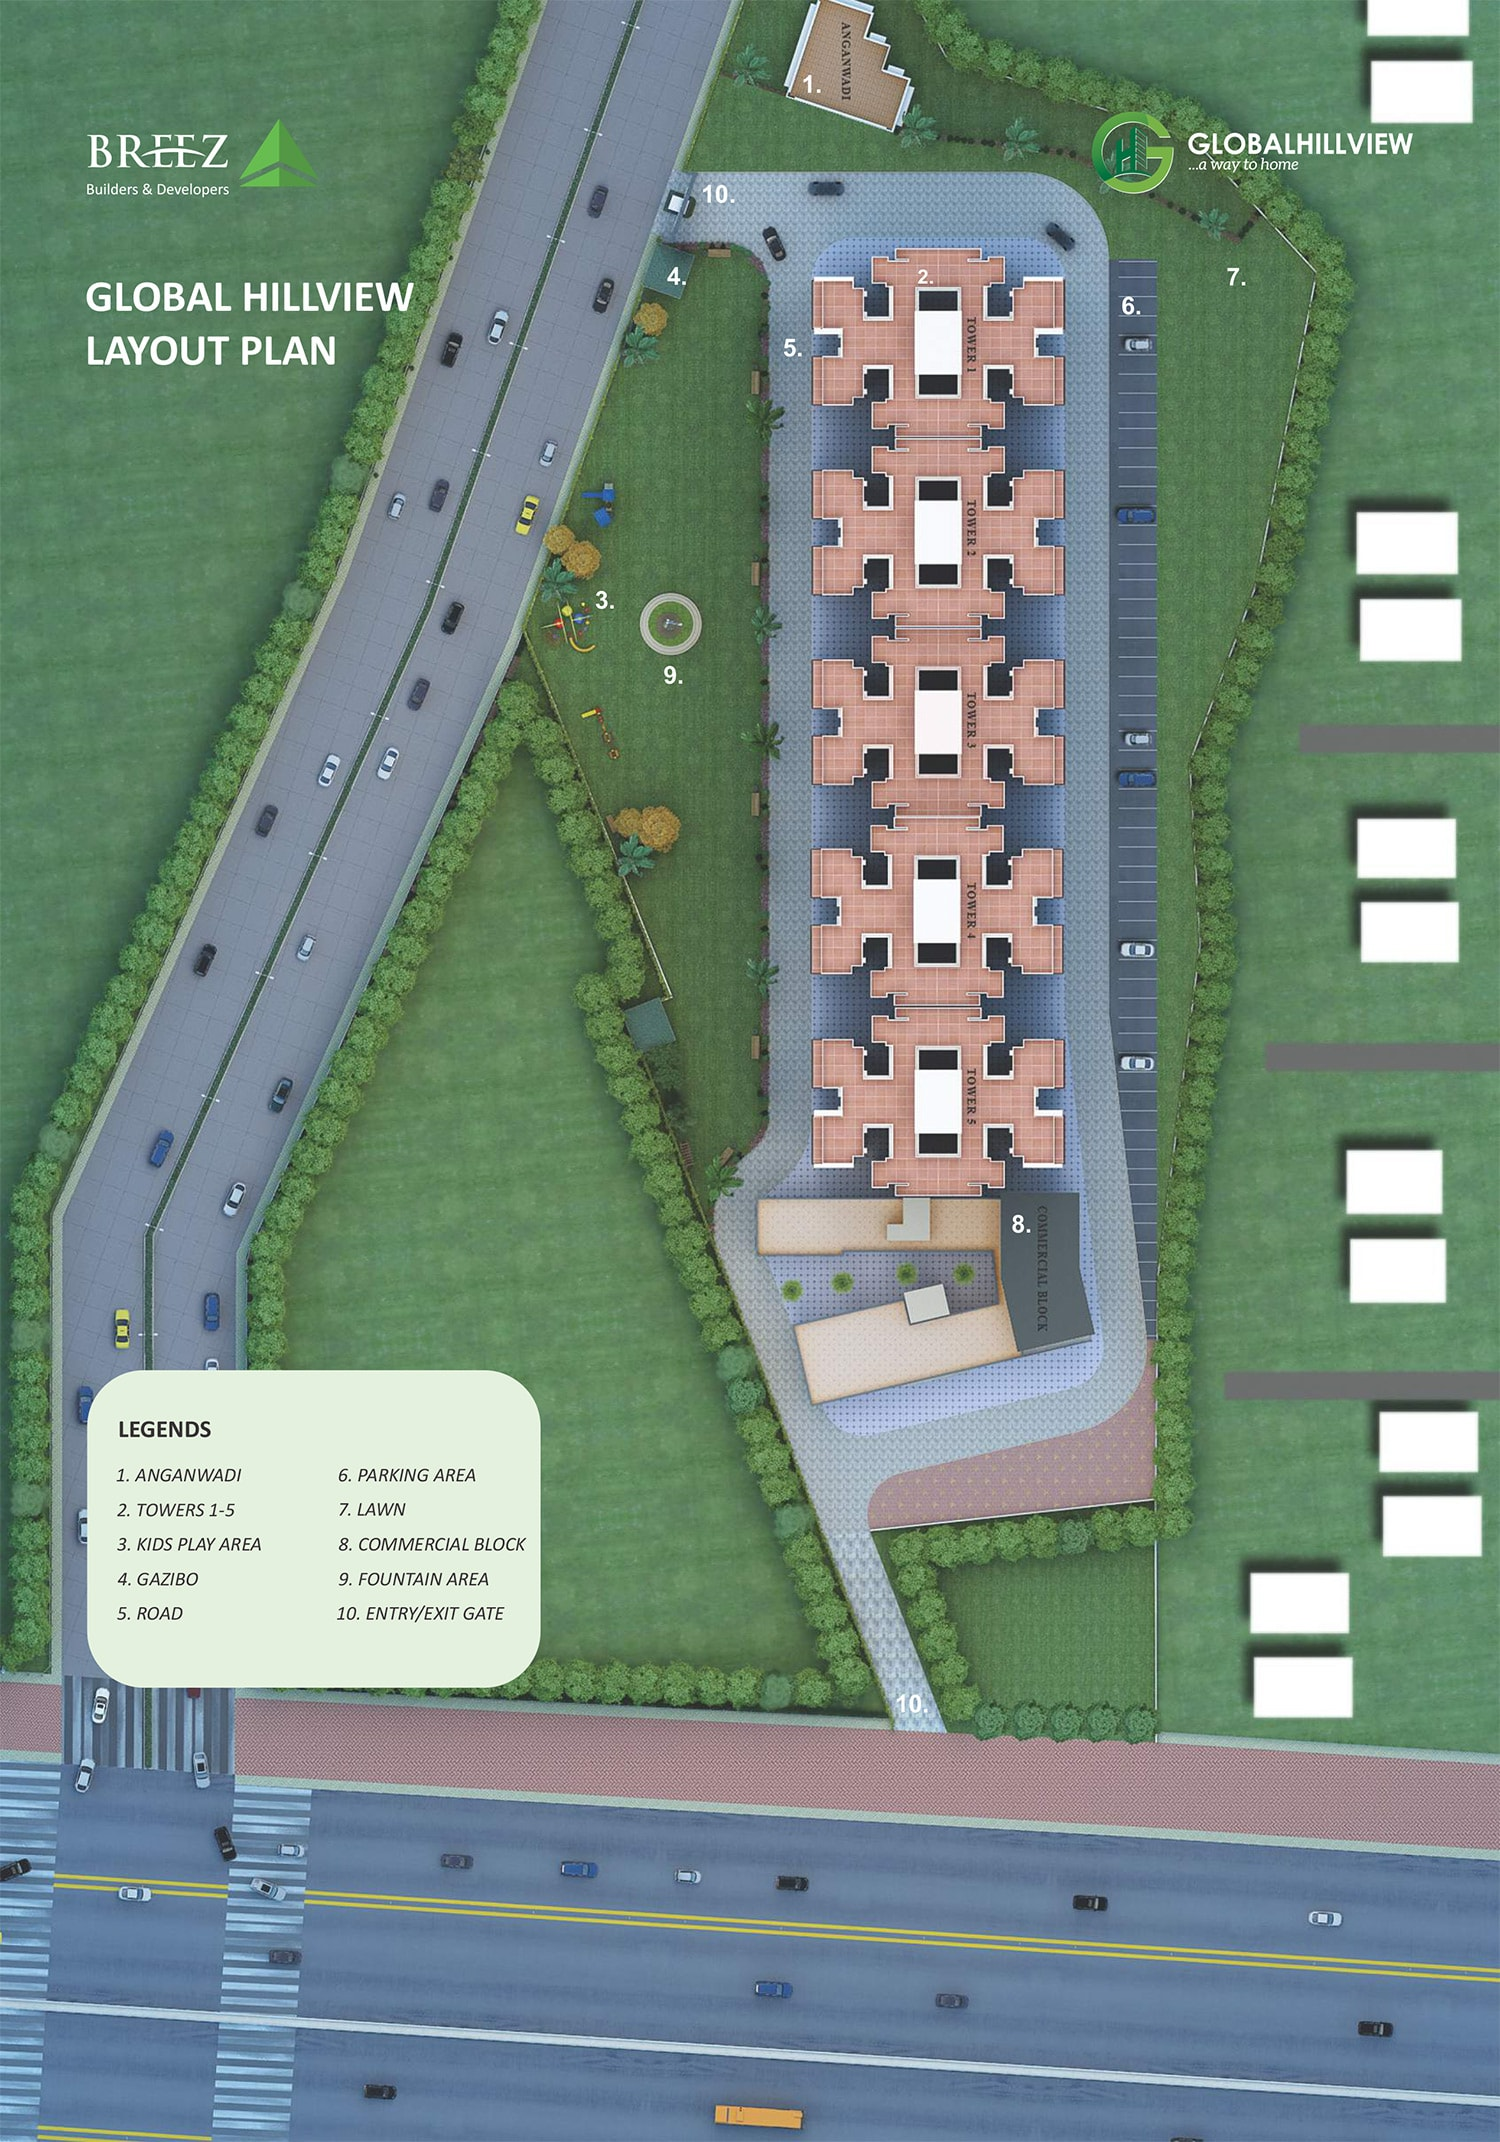 Global Hill View - Affordable Housing Layout Plan